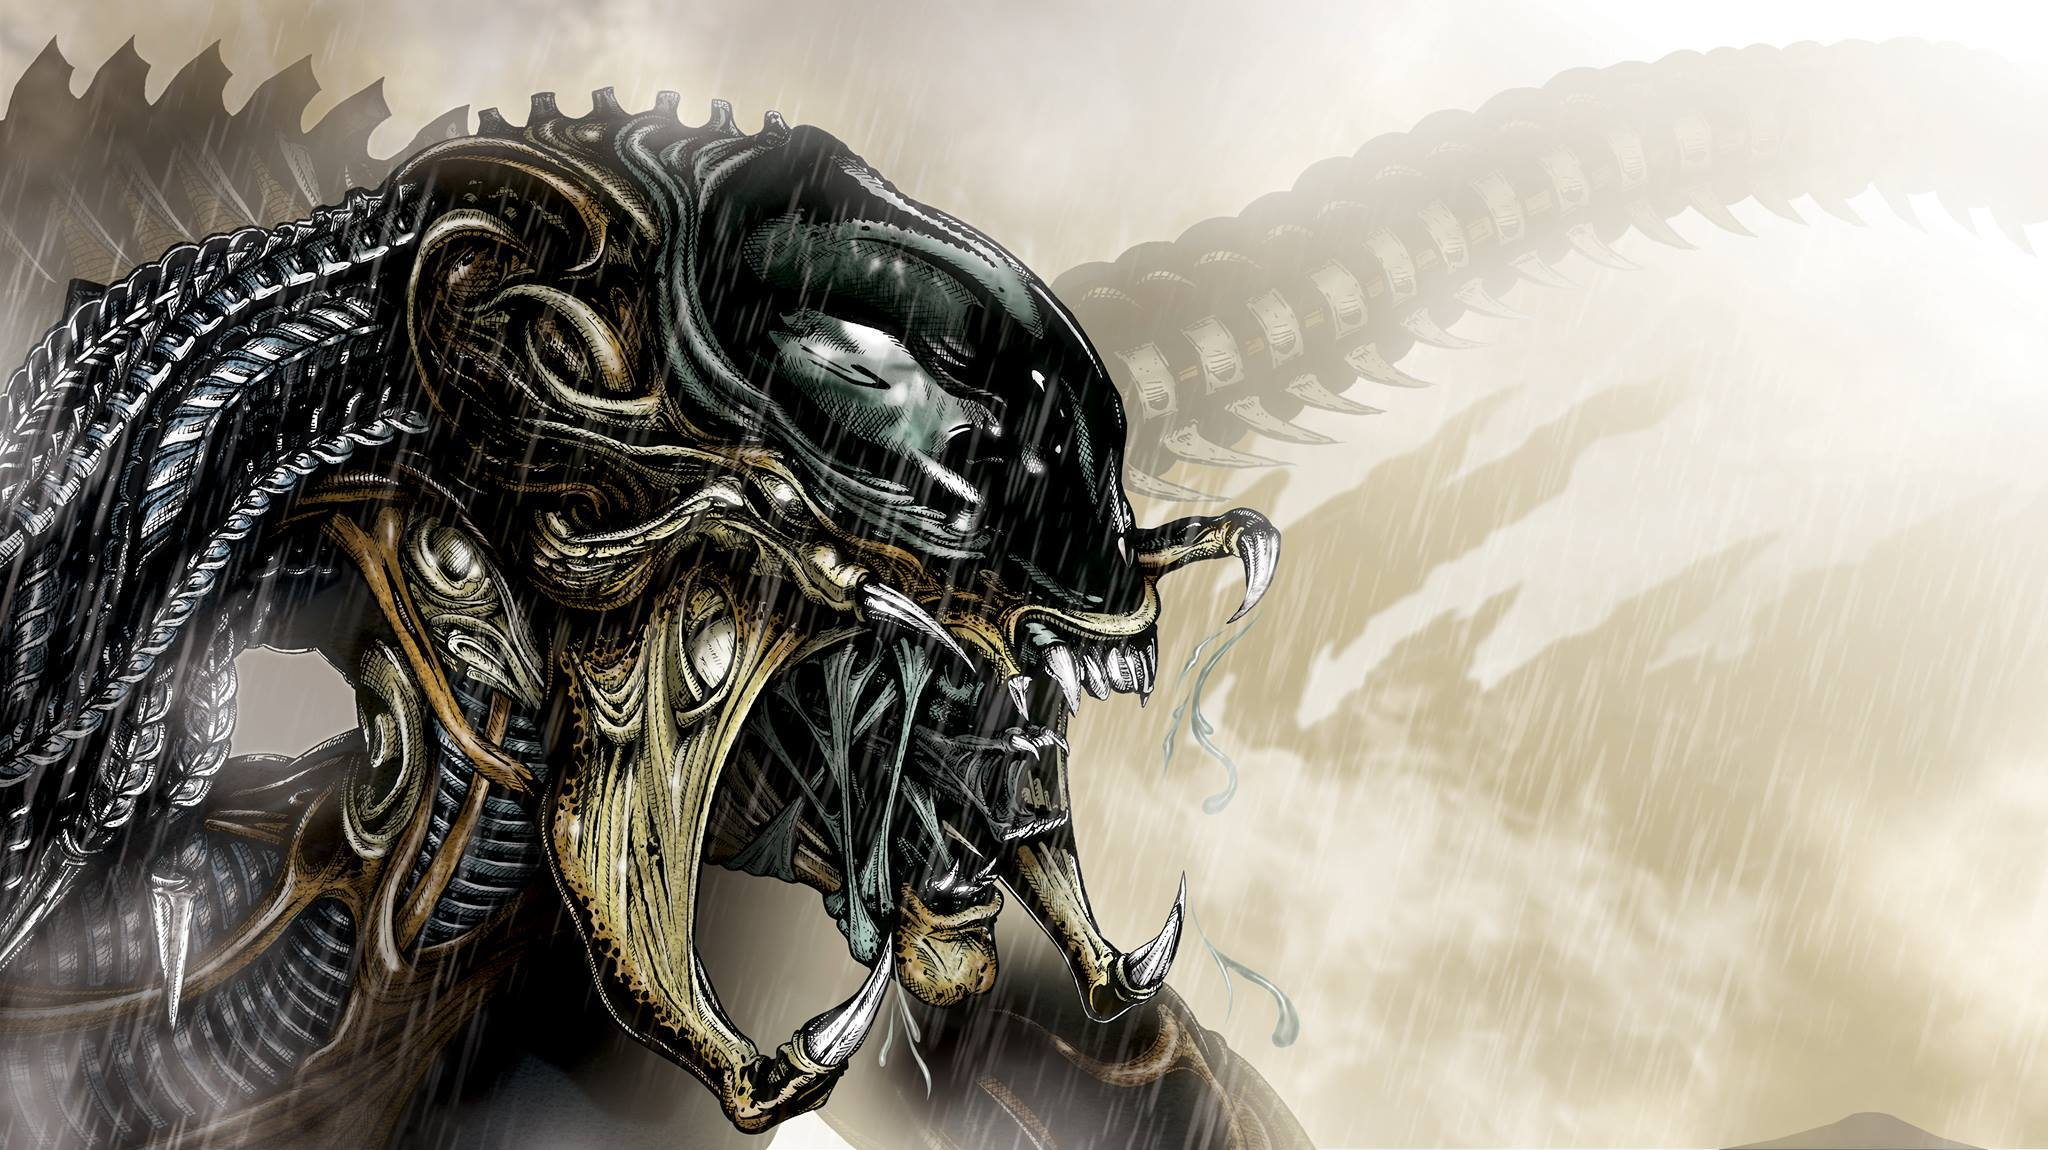 Aliens-vs-Predator-Requiems-wallpaper-wp5004412